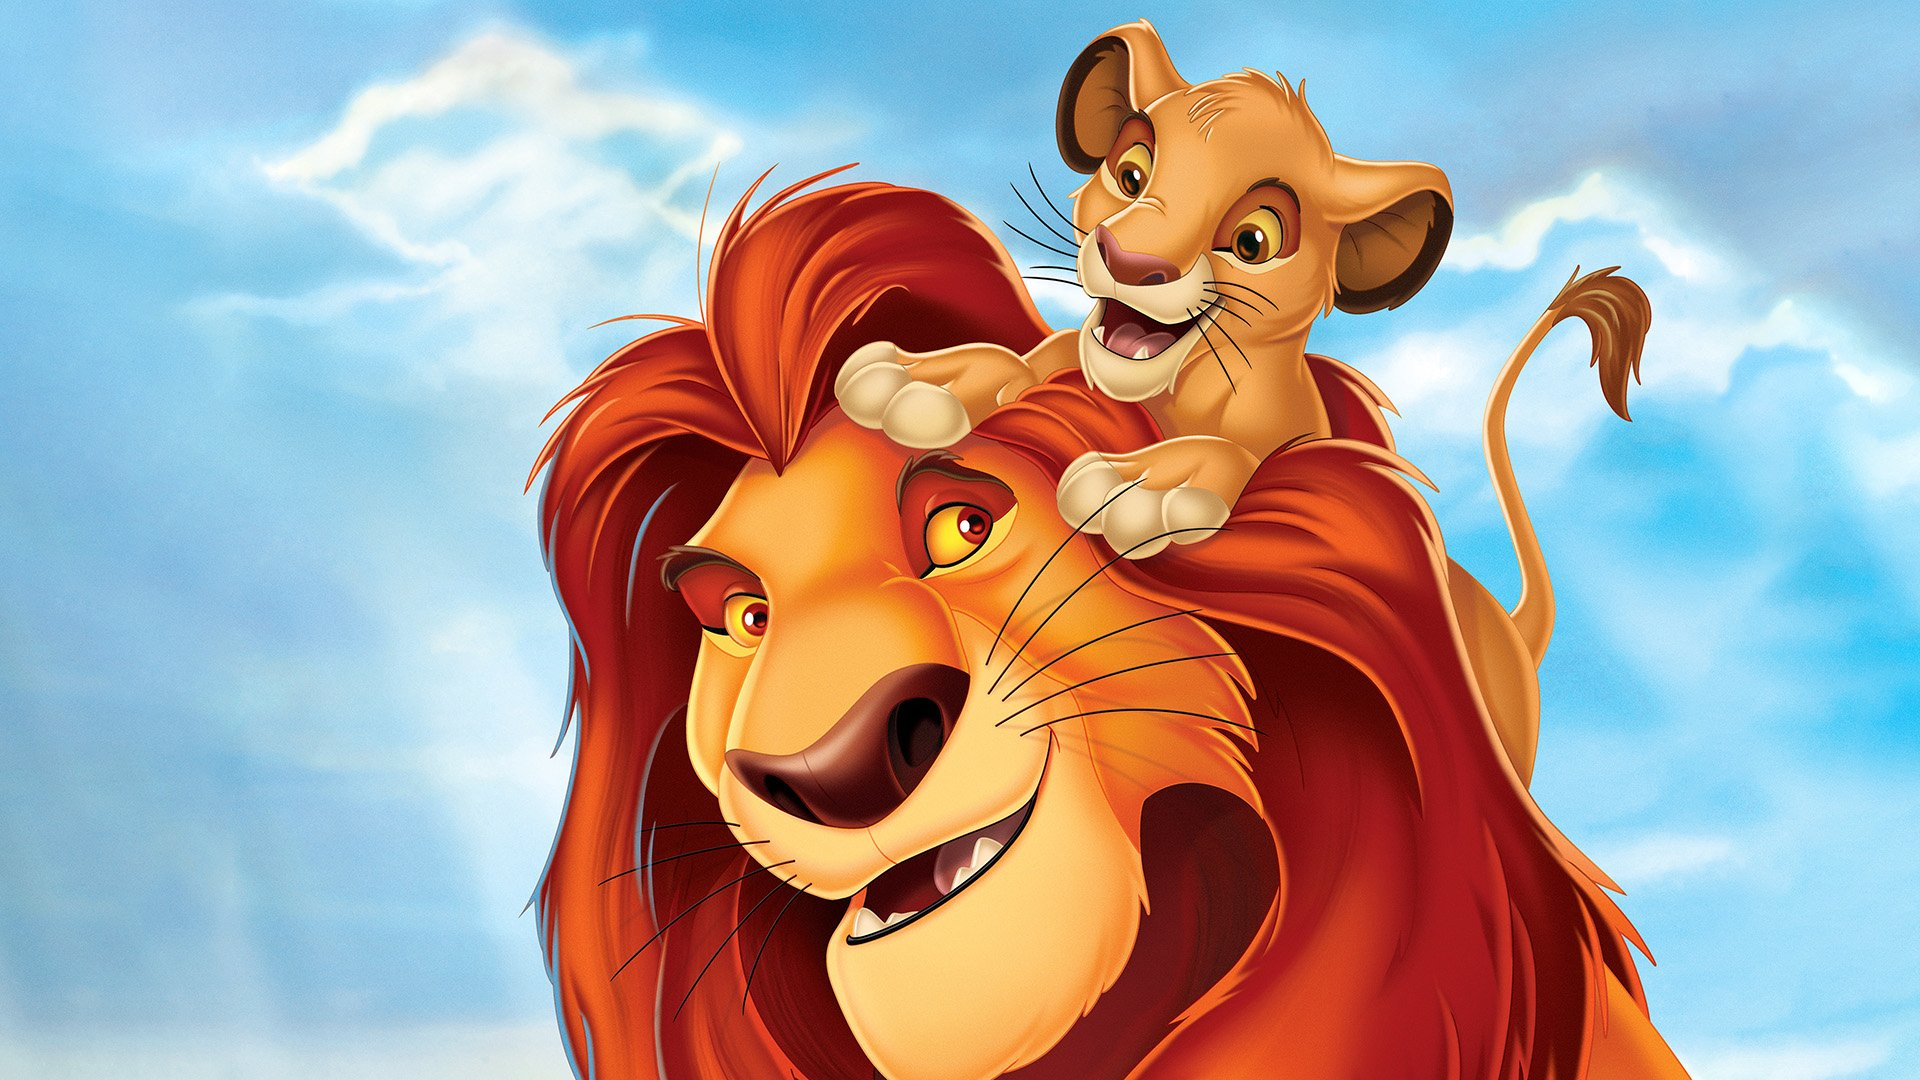 Lion King Mufasa Scar - König Der Löwen Simba Und Mufasa , HD Wallpaper & Backgrounds